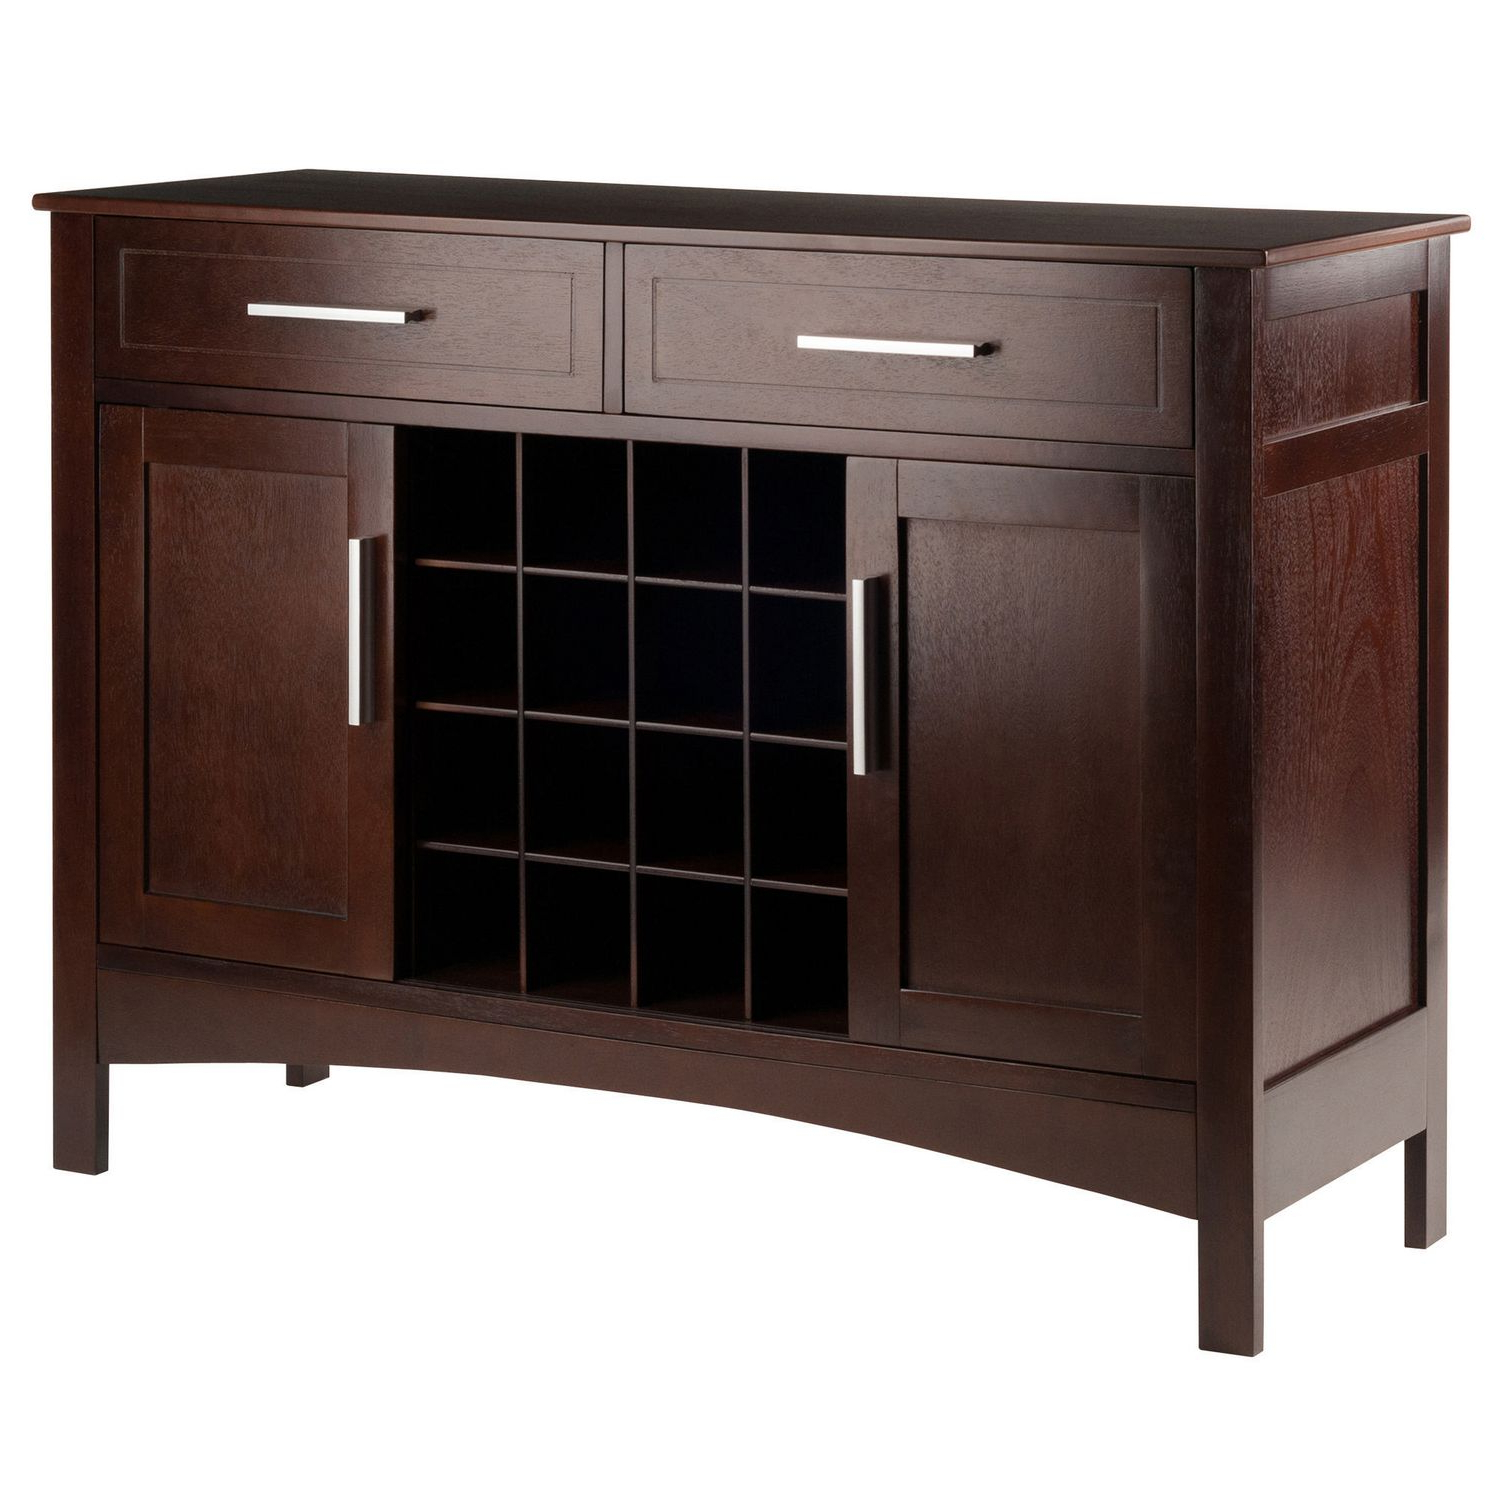 Winsome Gordon Buffet Cabinet/sideboard Cappuccino Finish Within Contemporary Cappuccino Buffets (View 20 of 20)